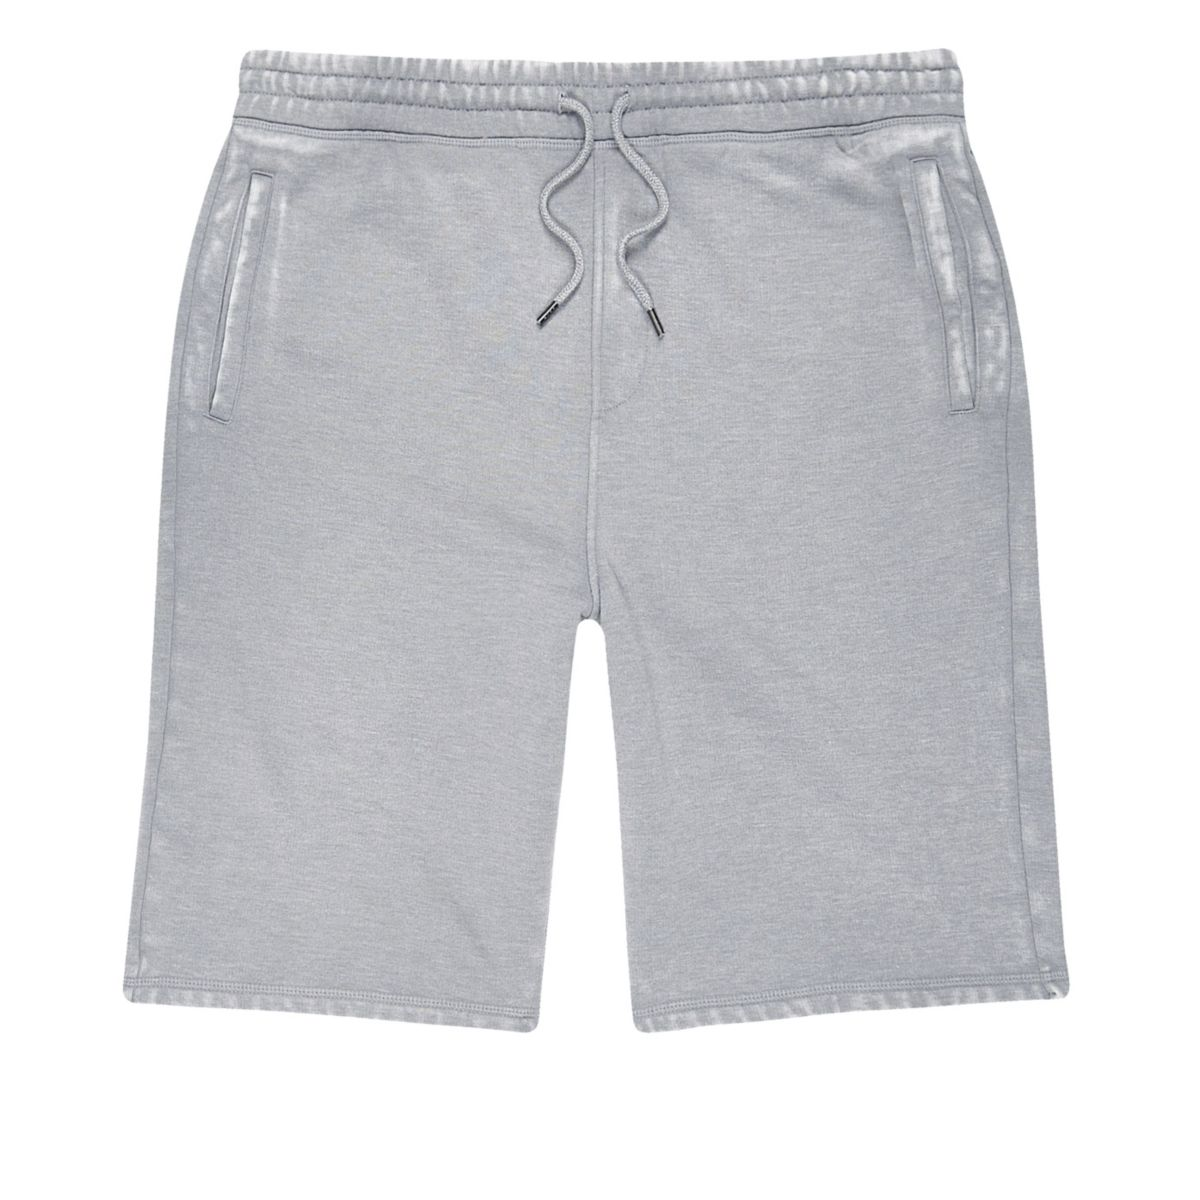 Grey burnout jogger shorts